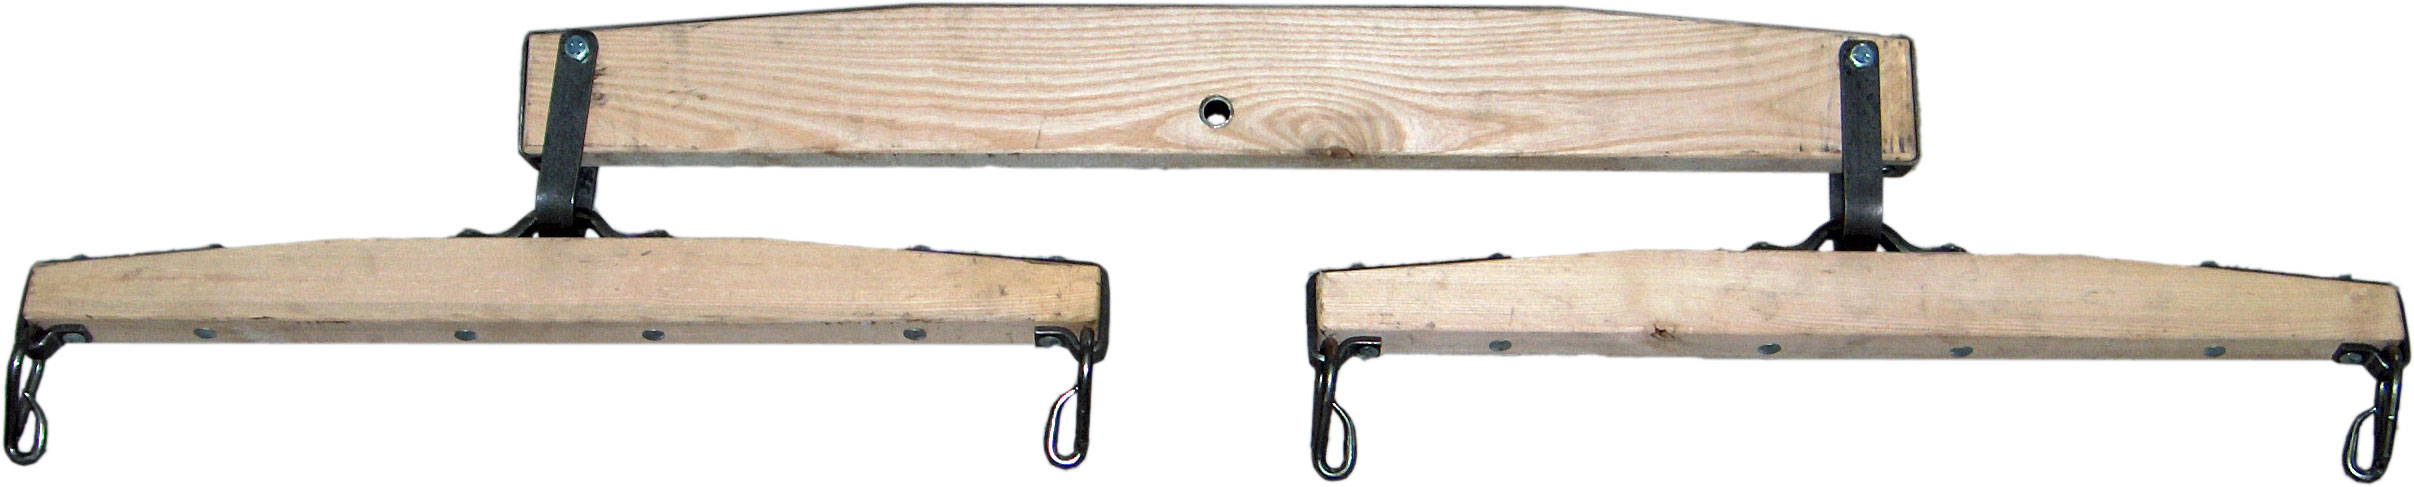 Draft Wooden Double Tree Square End